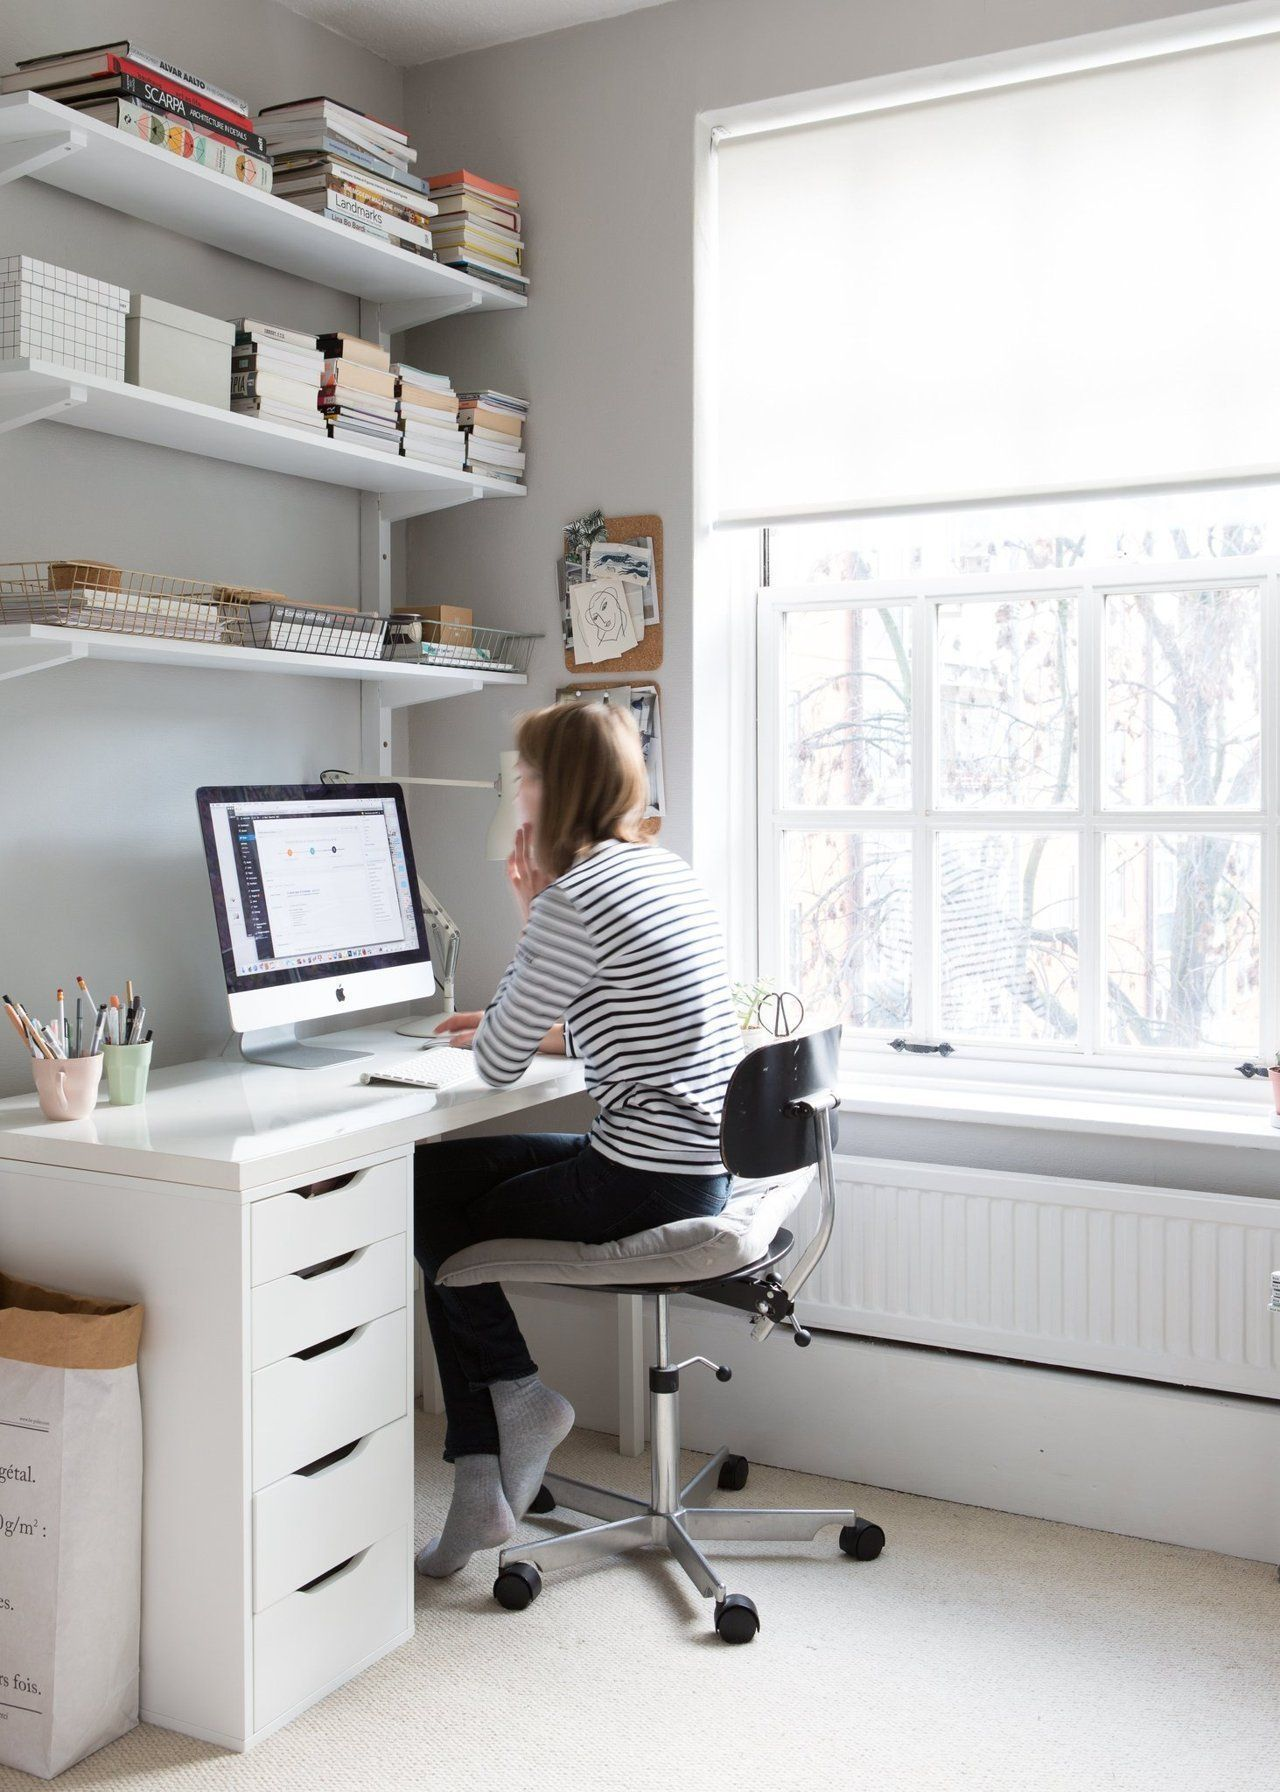 Whether You Are Looking For A Floating Desk Or Standing Riser Will Find The Best Options Small Desks Ideas Here Deskideas Artdeskideas